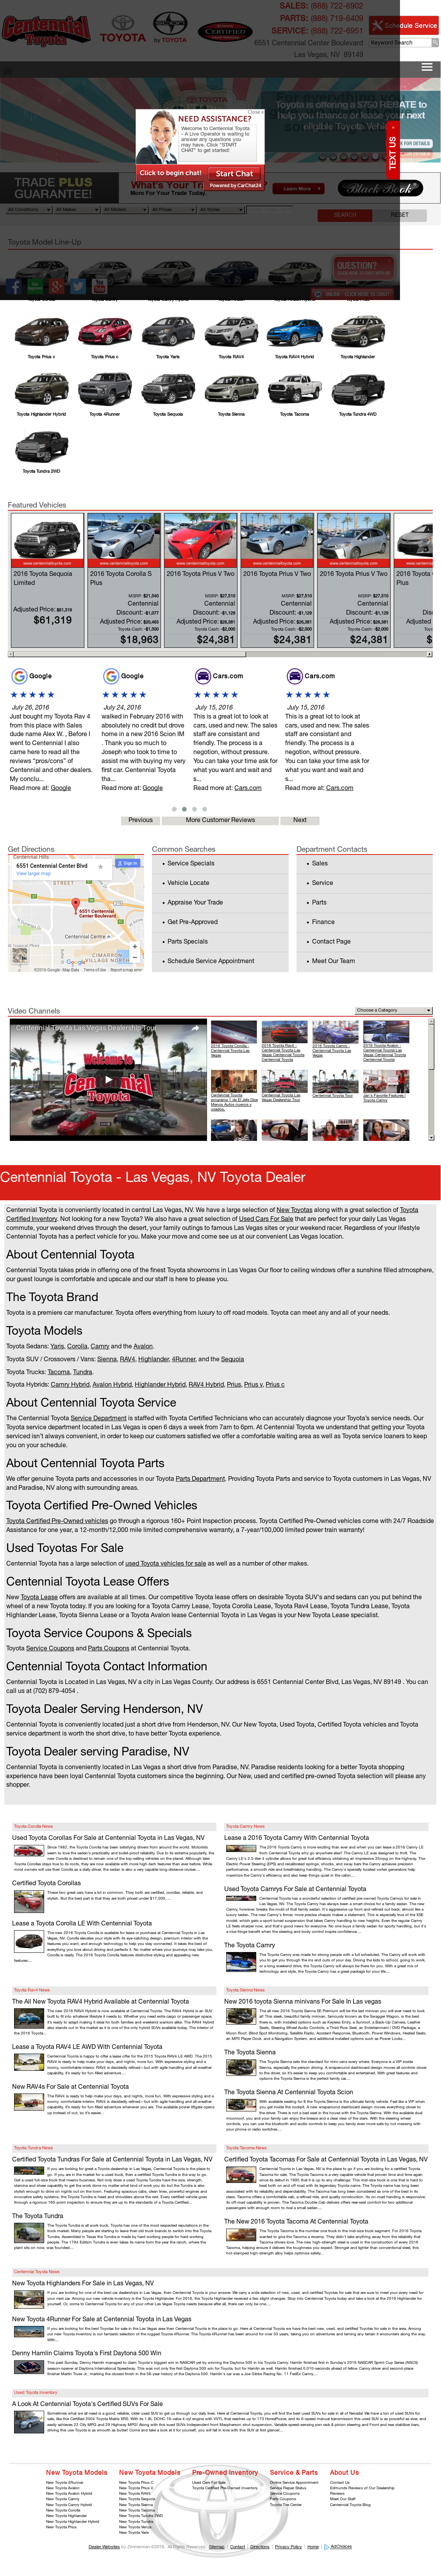 Centennial Toyota Competitors, Revenue And Employees   Owler Company Profile